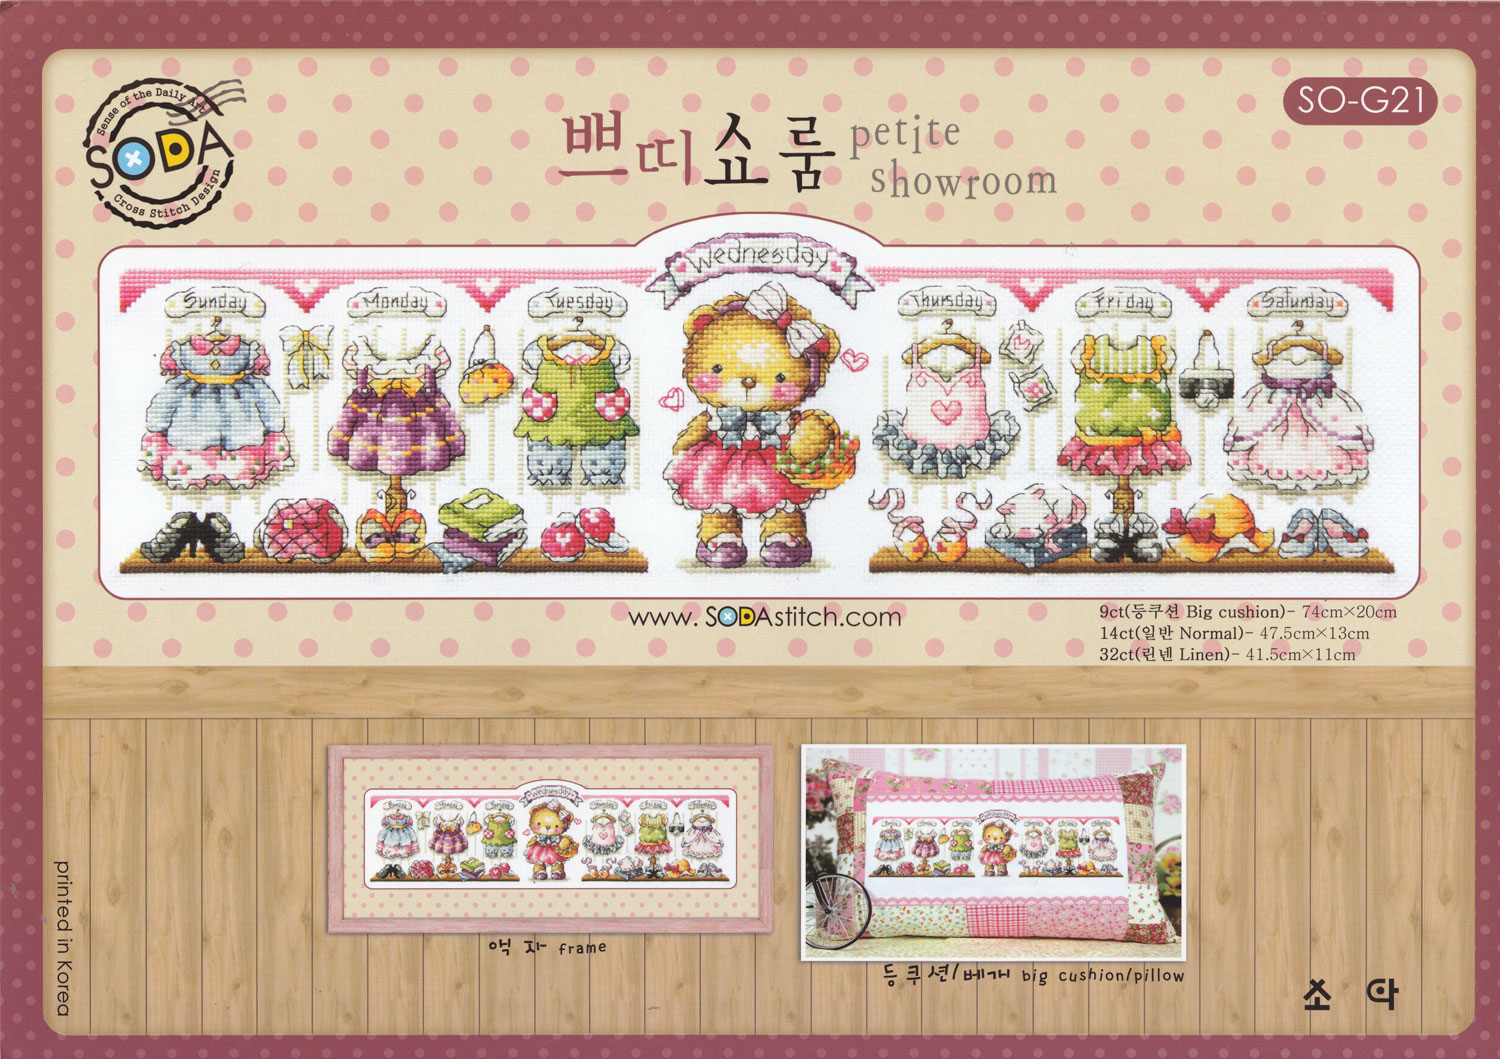 Cross stitch corner new 2017 dmc floss color card incl new colors soda stitch petite showroom geenschuldenfo Choice Image